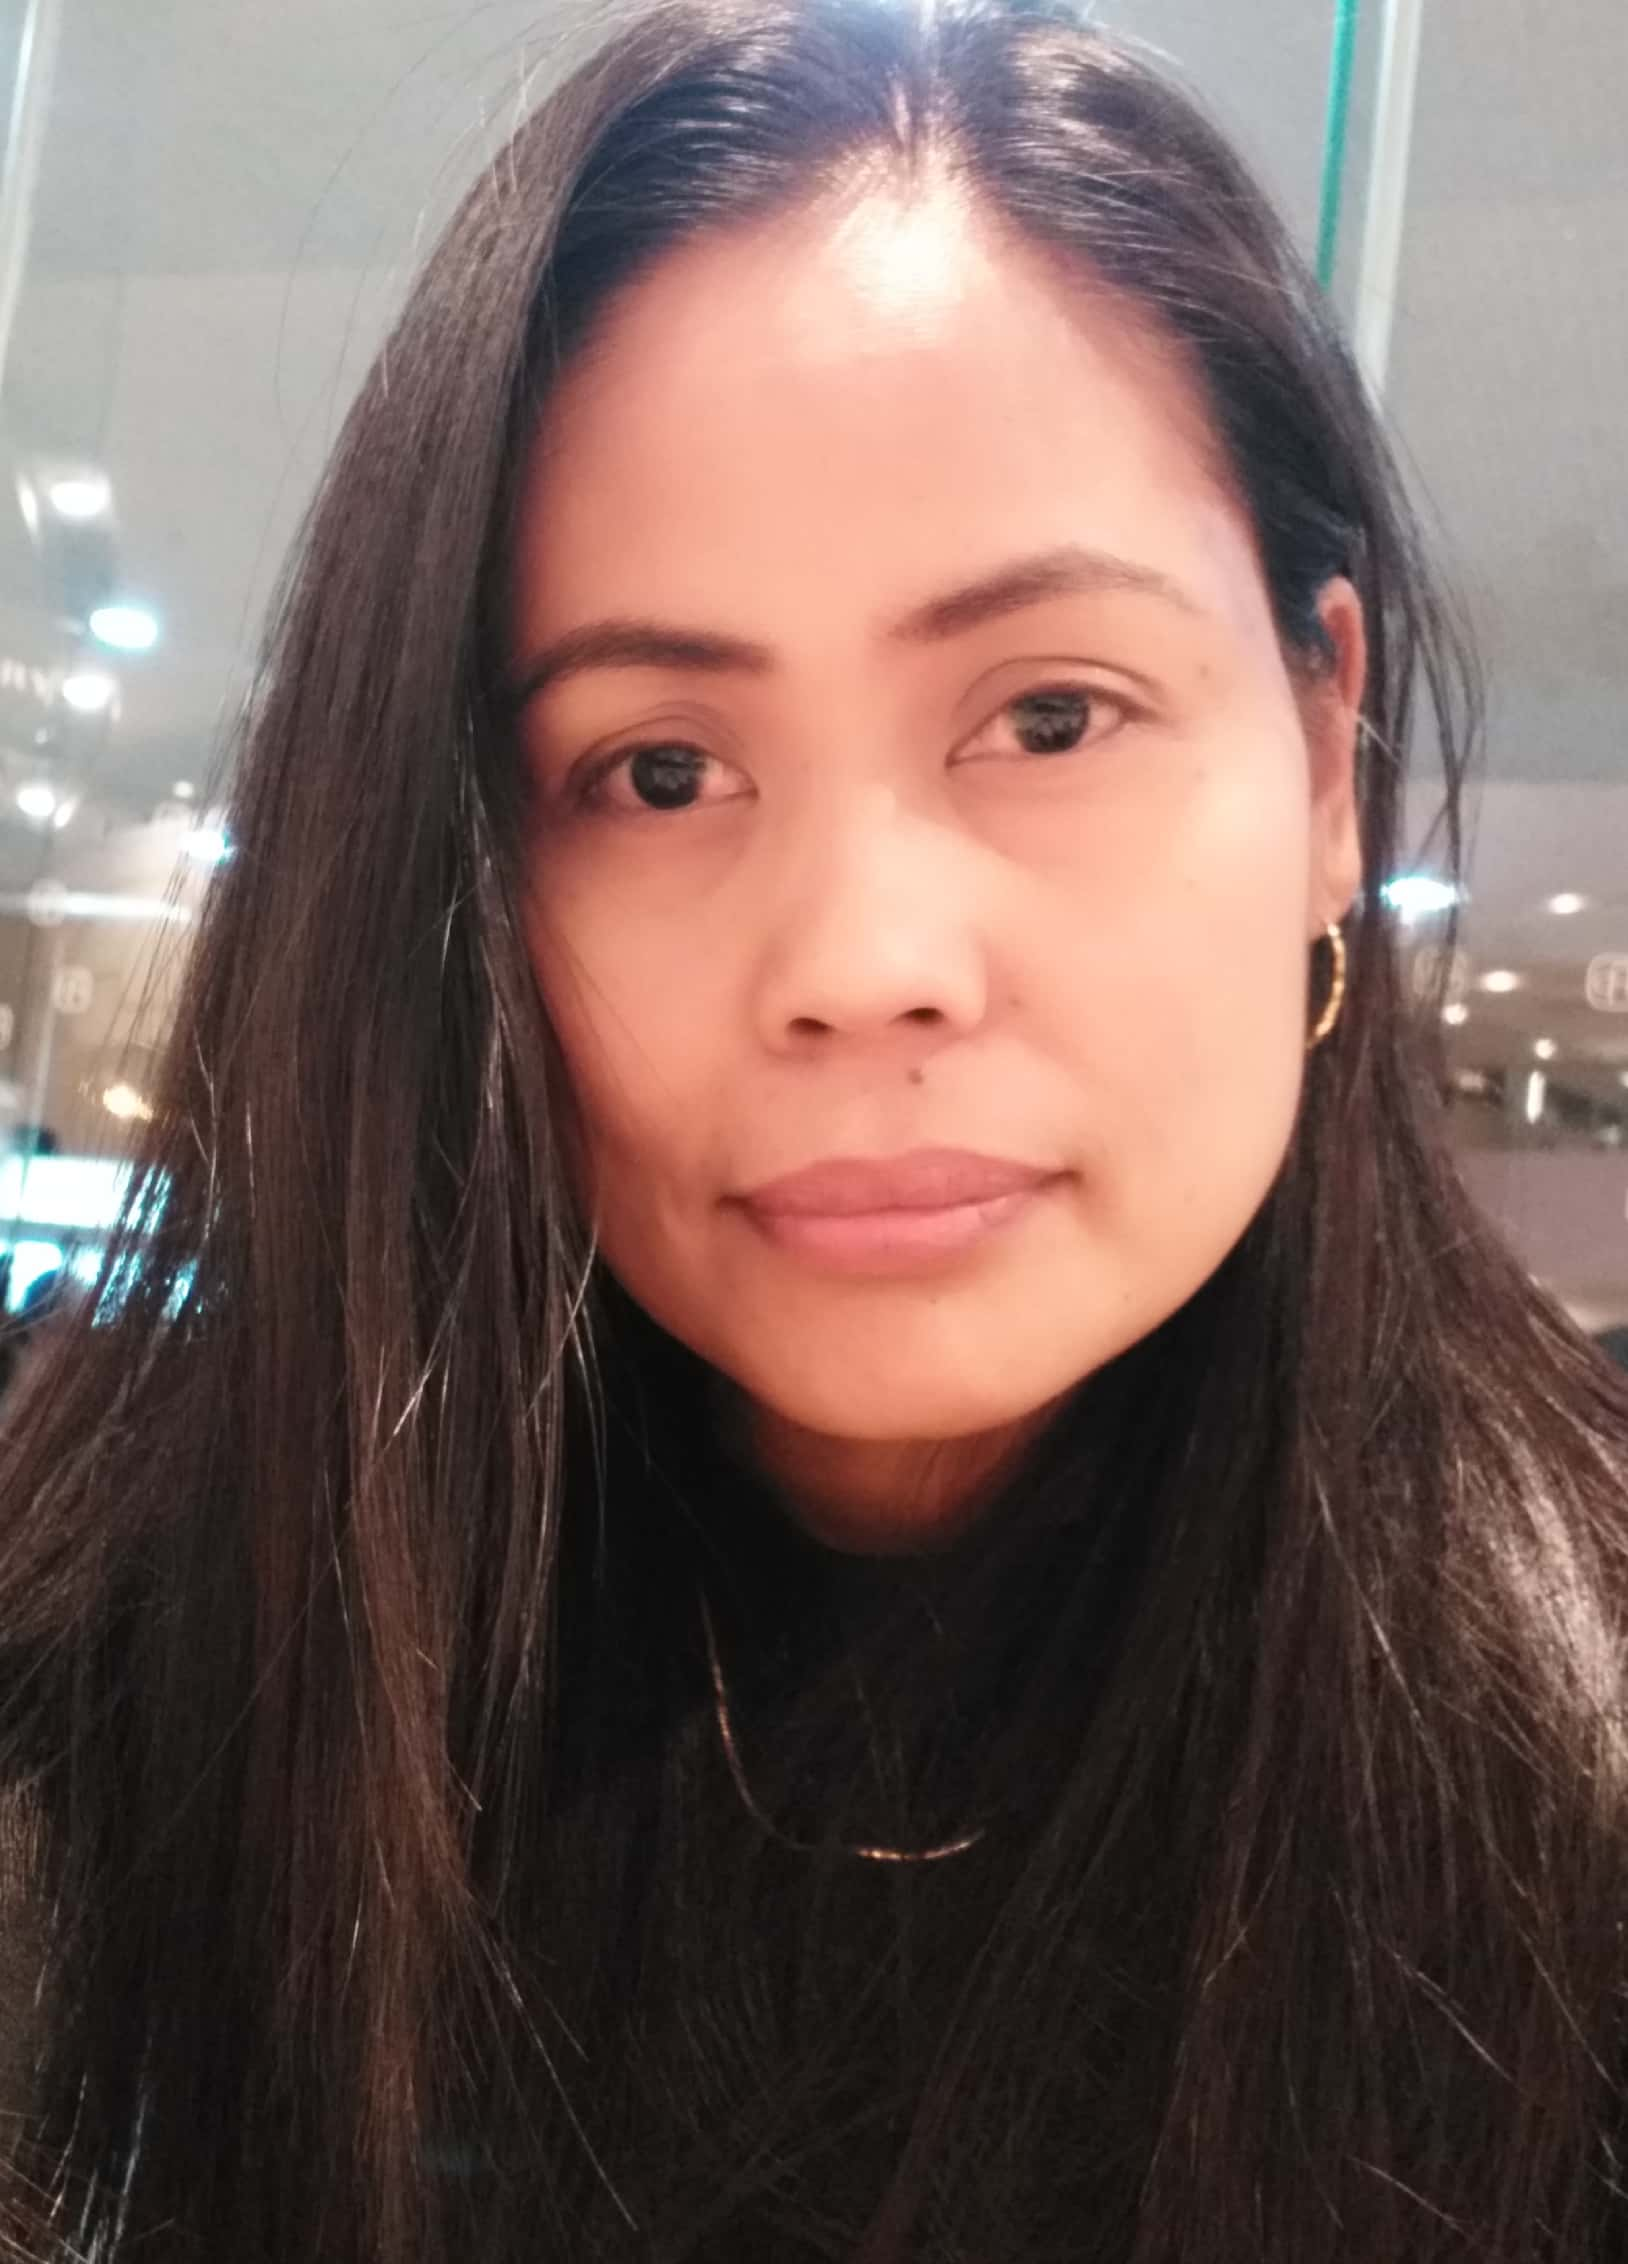 Looking For A Family to Care For in Canada